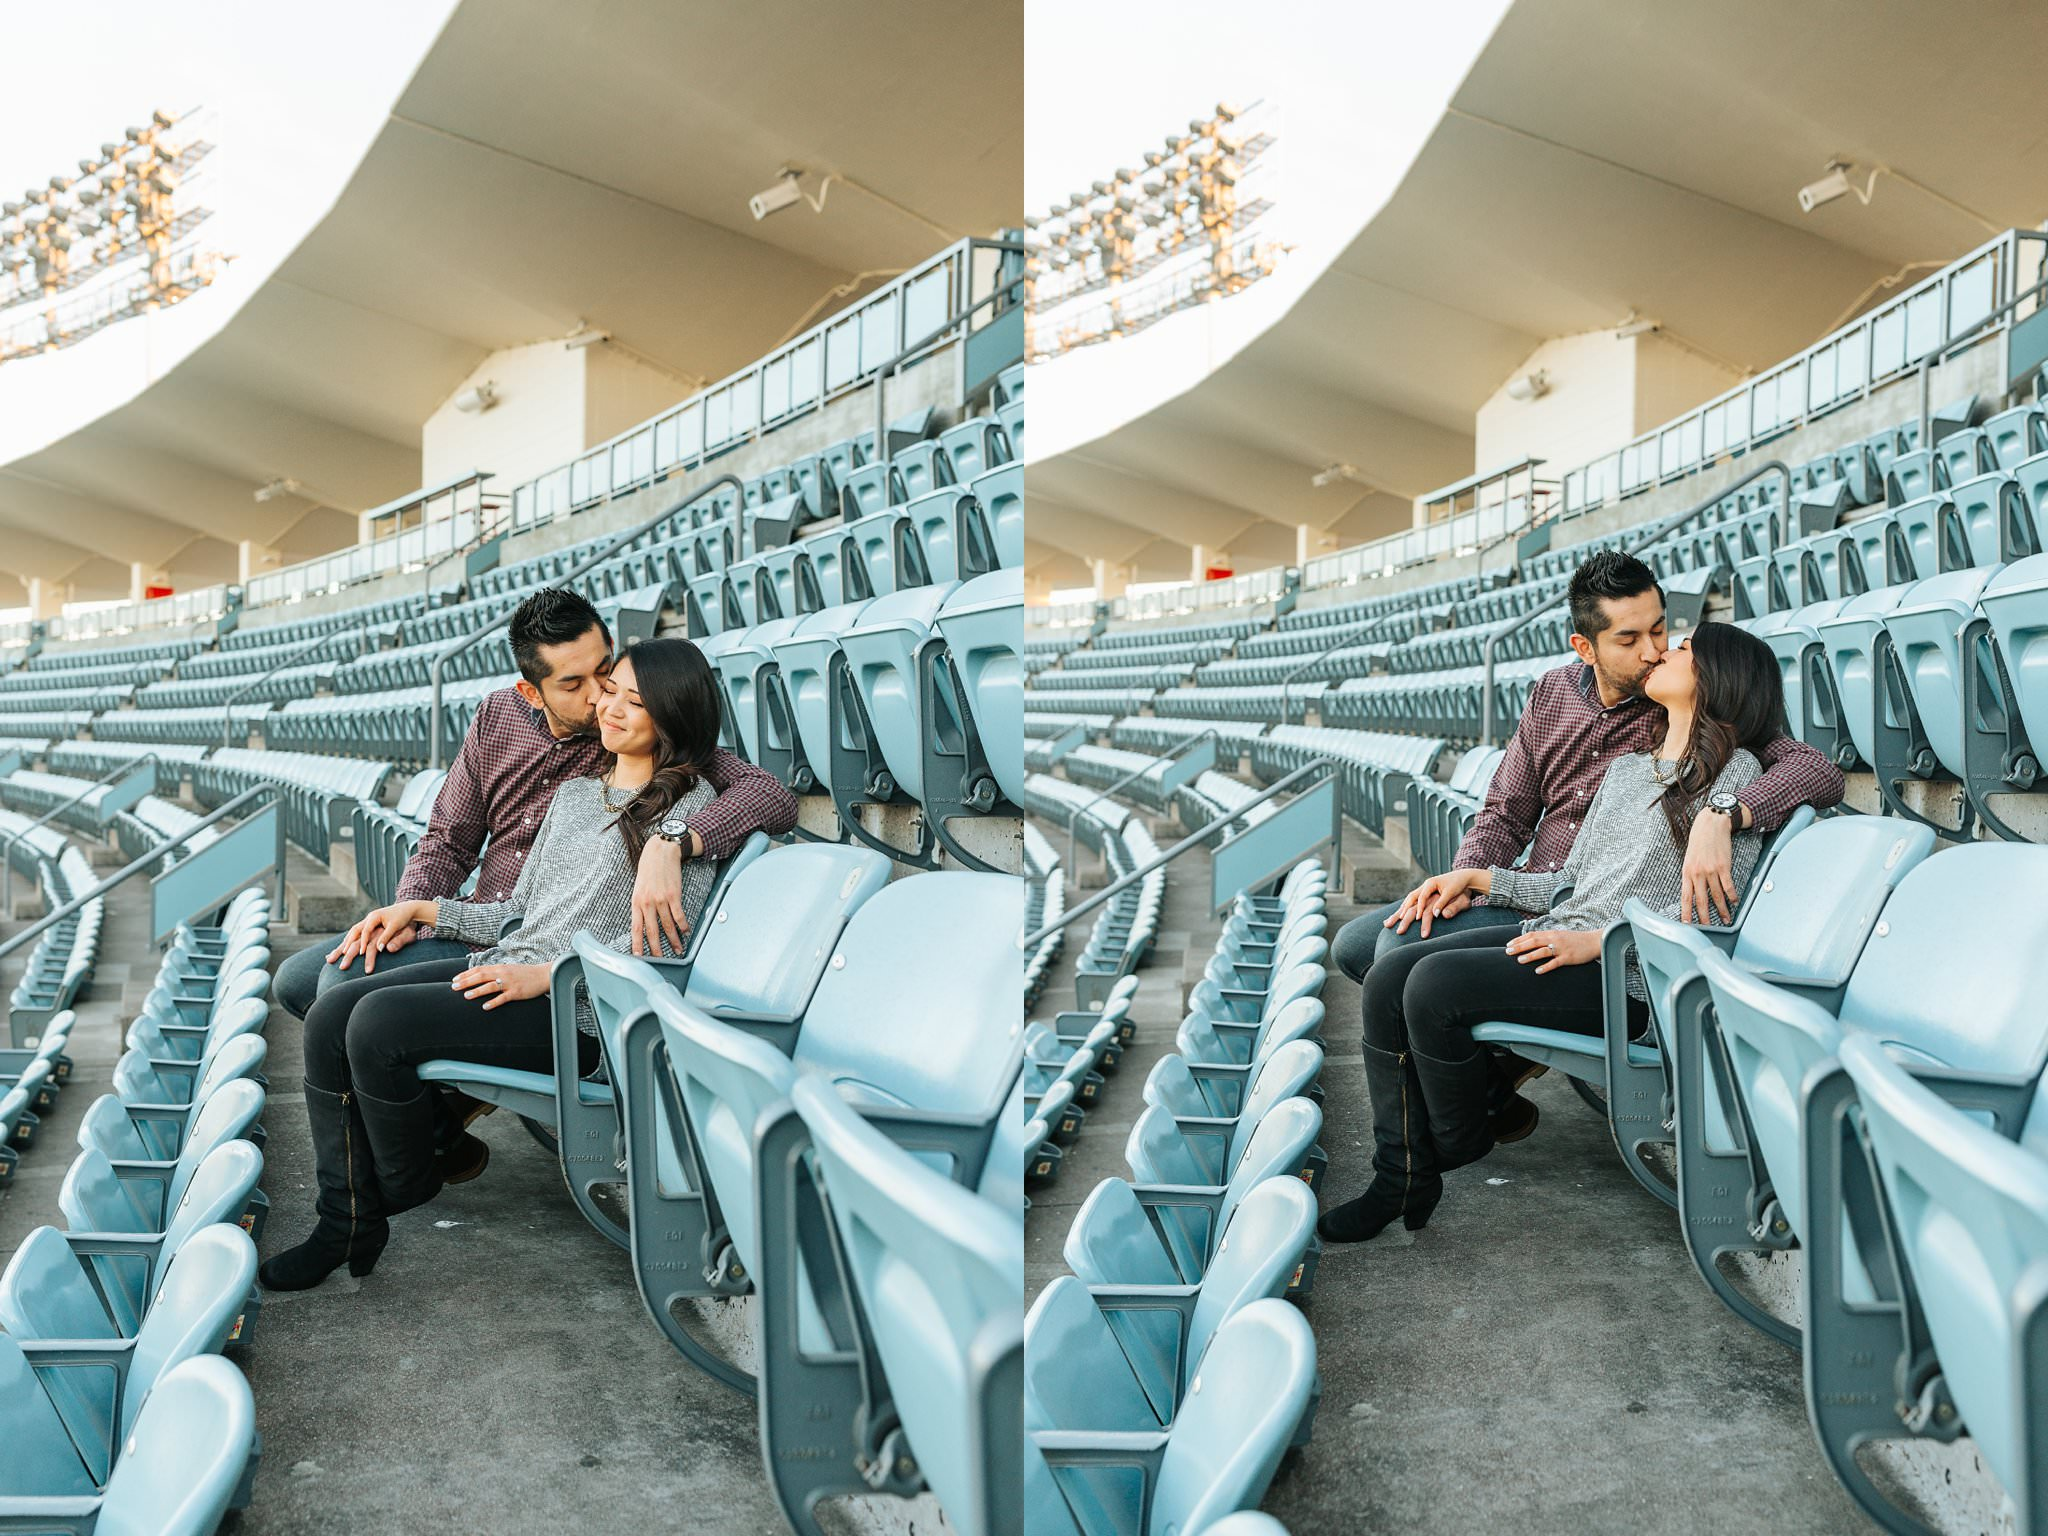 Lets go Dodgers - Dodger fan engagement session - http://brittneyhannonphotography.com